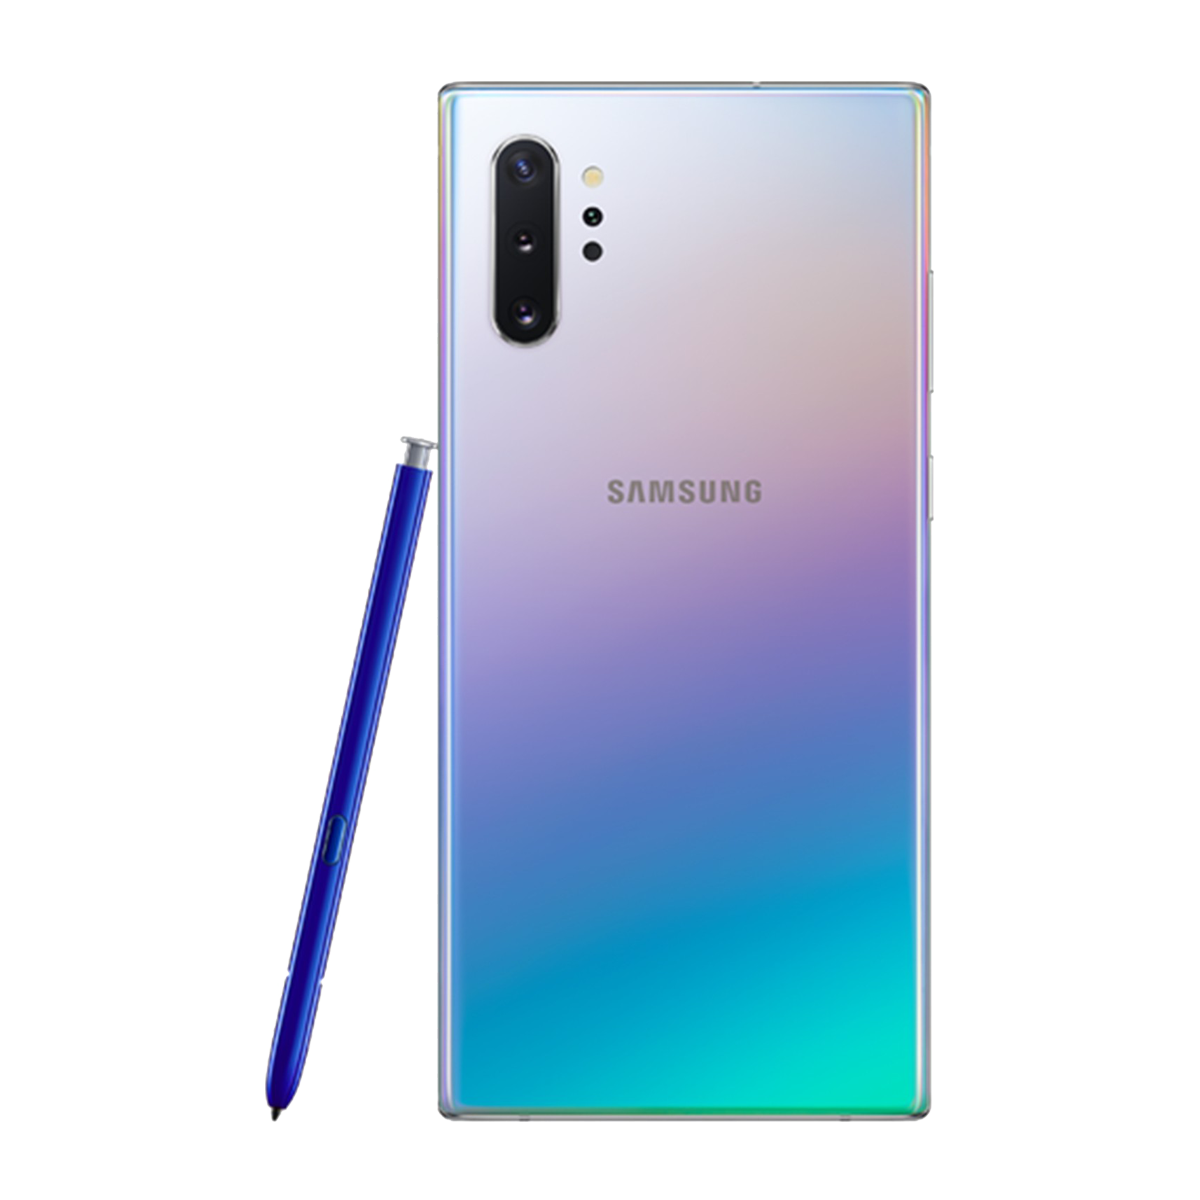 Samsung Galaxy Note 10 Plus 256 GB Silver